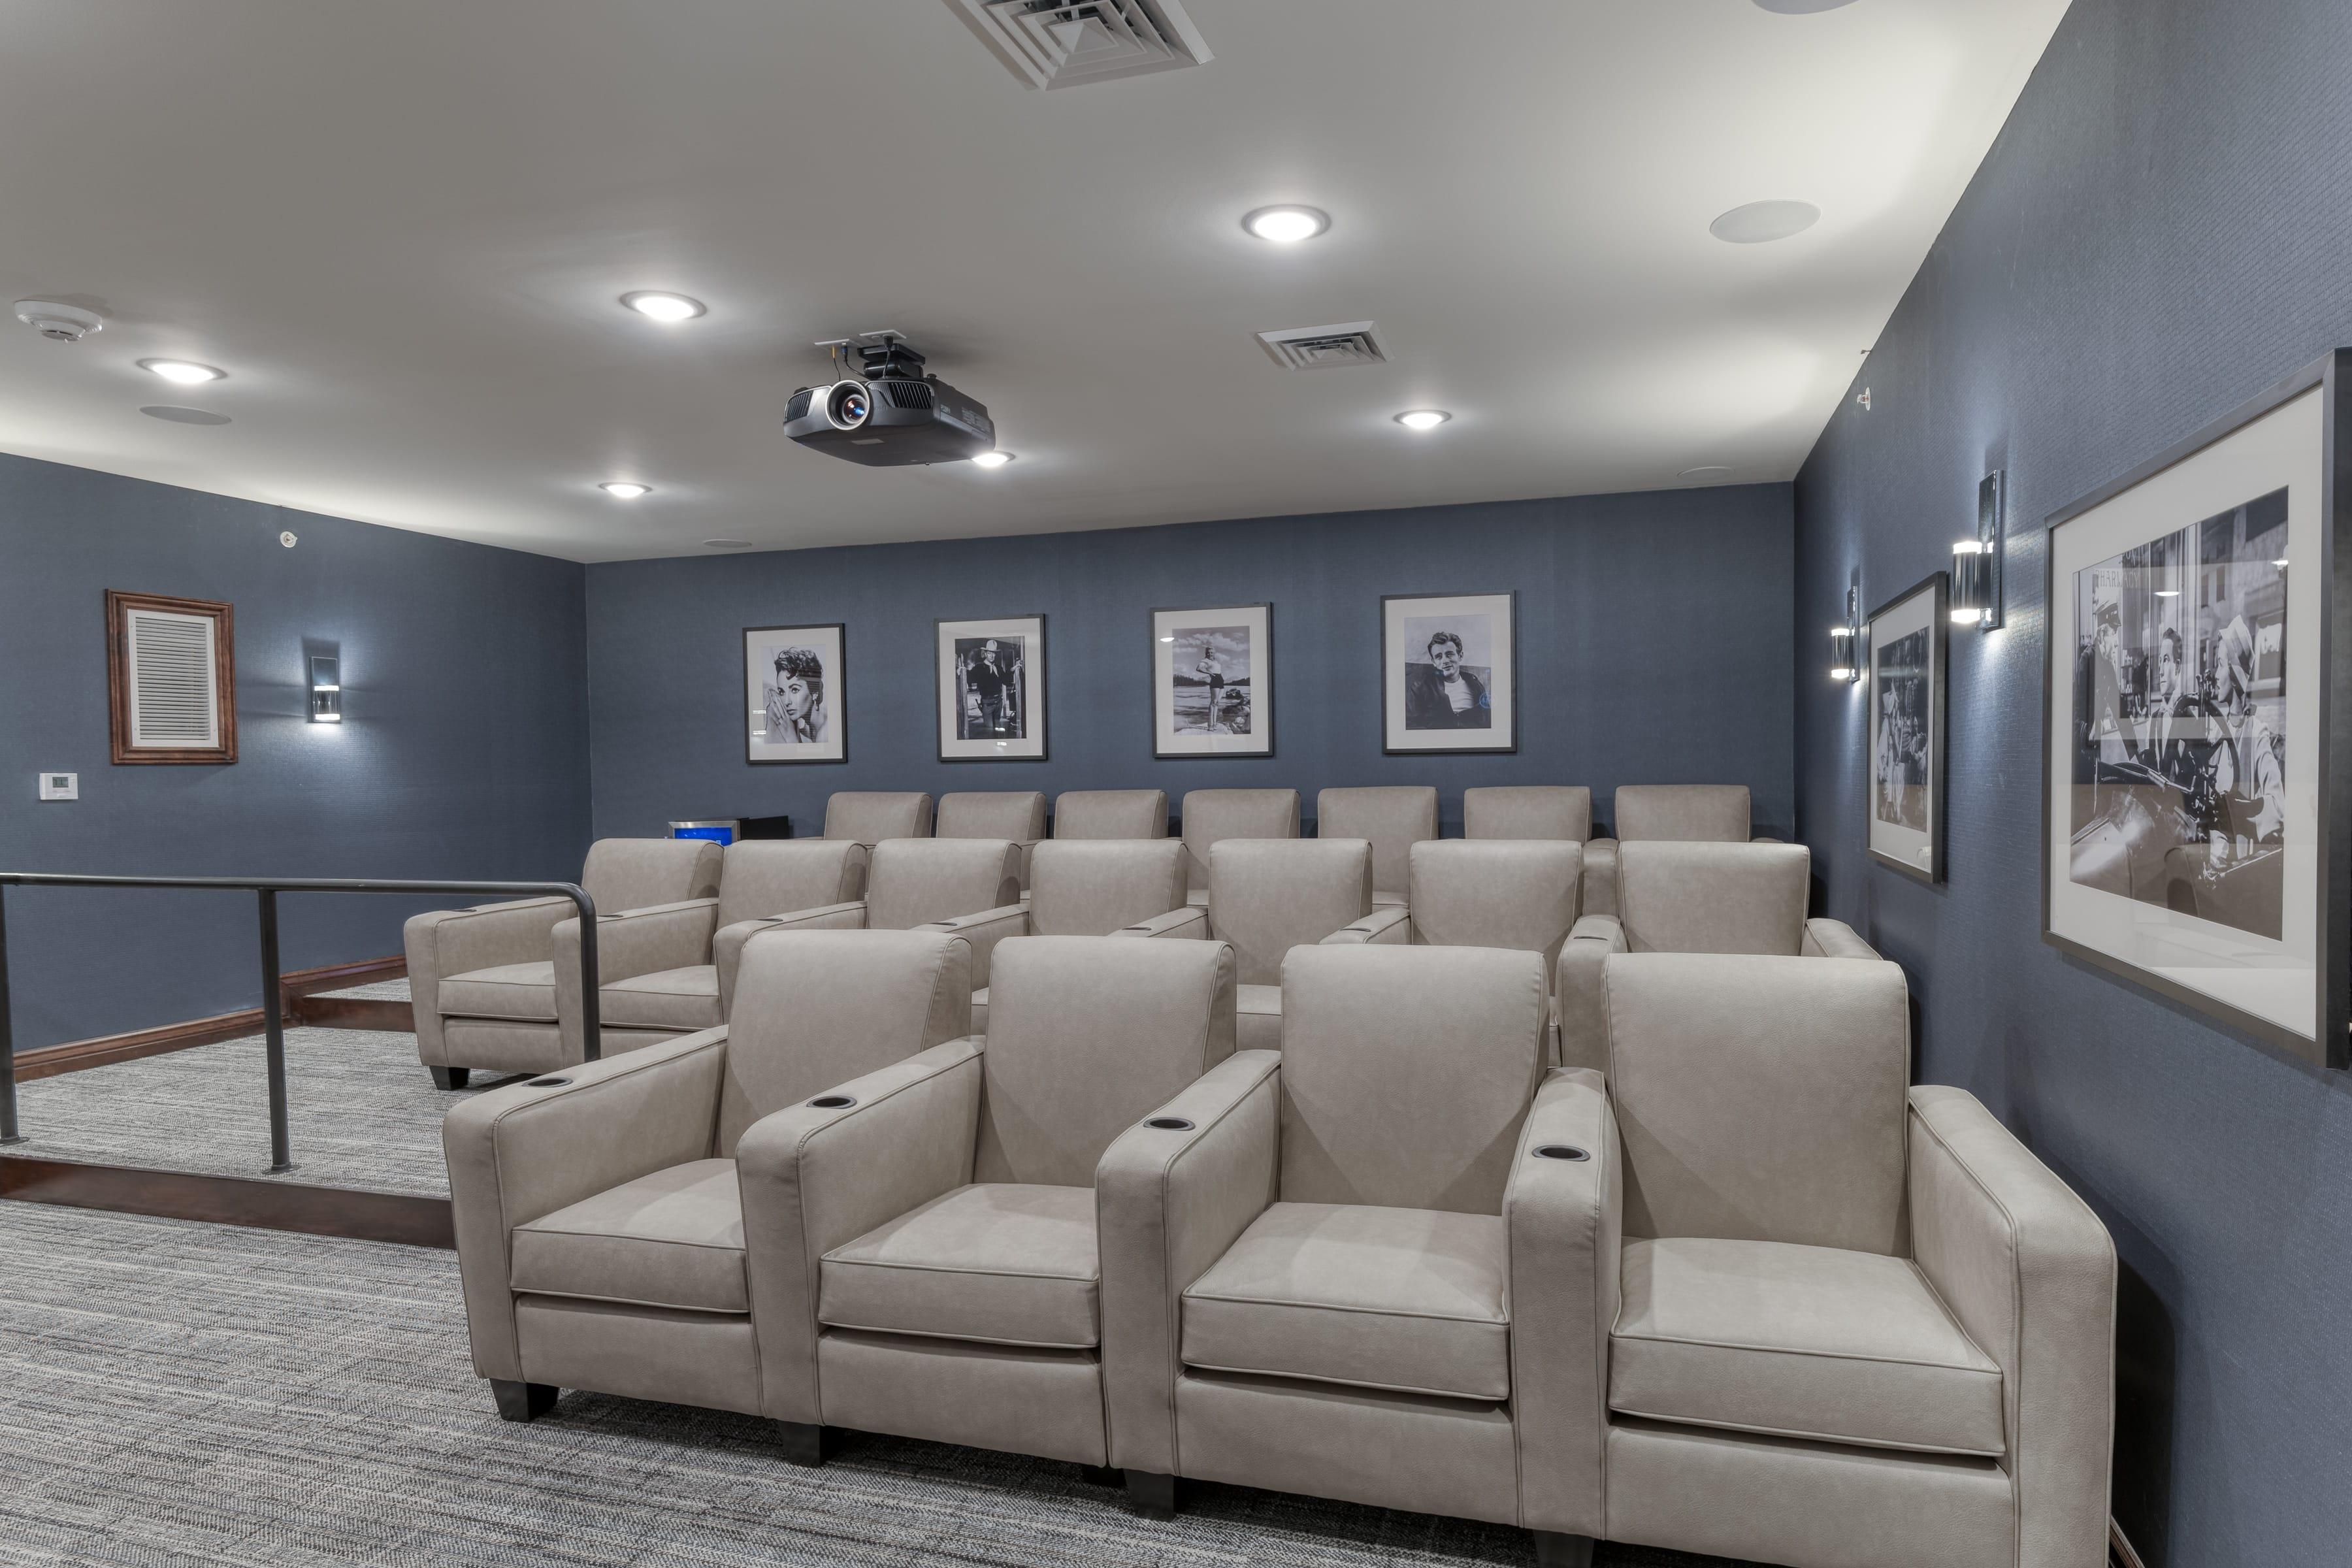 A community theatre room with comfortable chairs and built-in cup holders